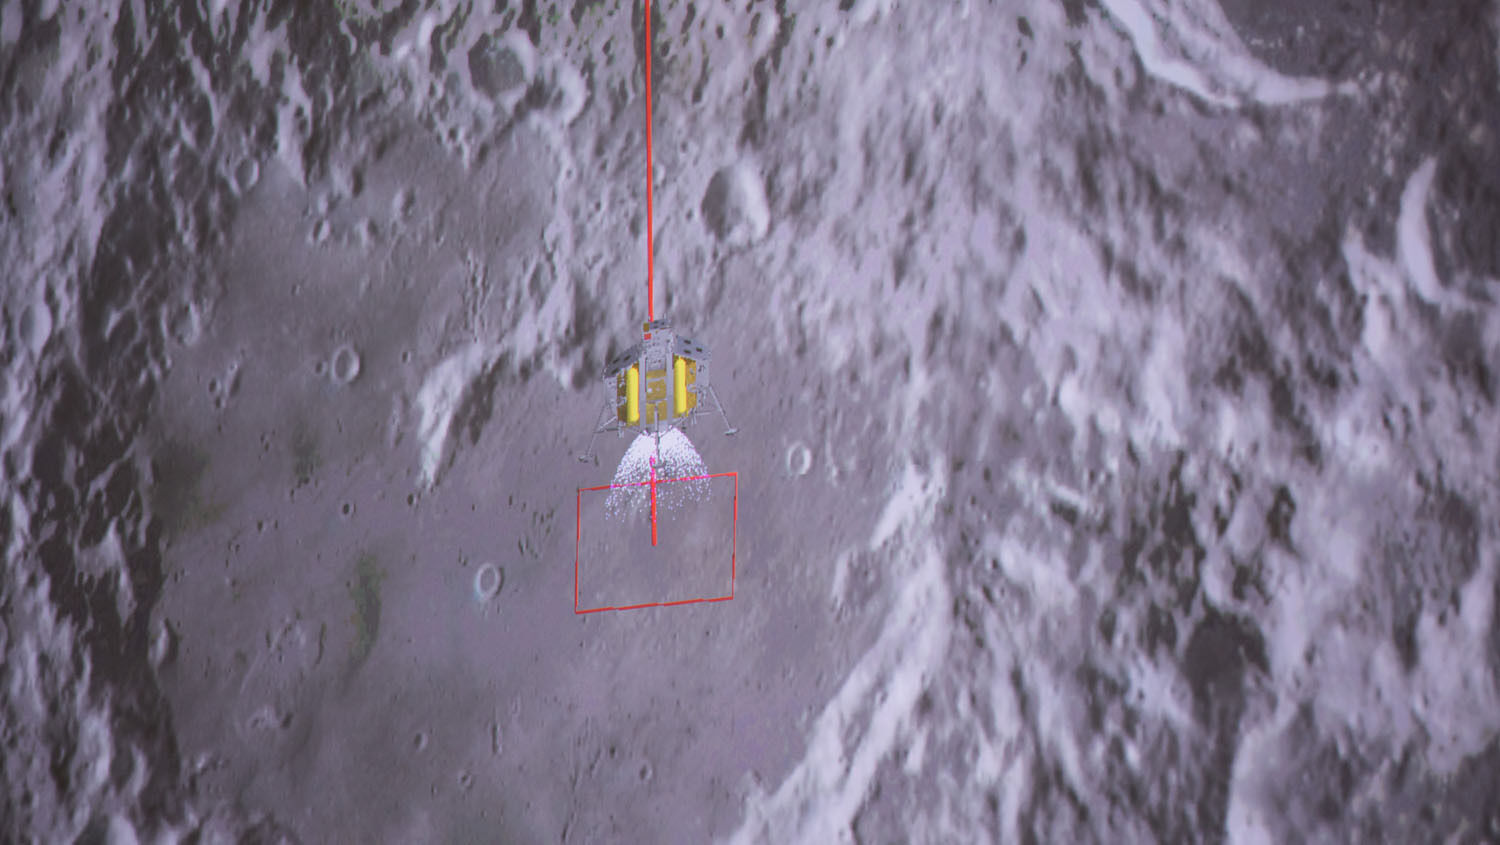 China's Lunar Probe Lands Safely on Far Side of Moon